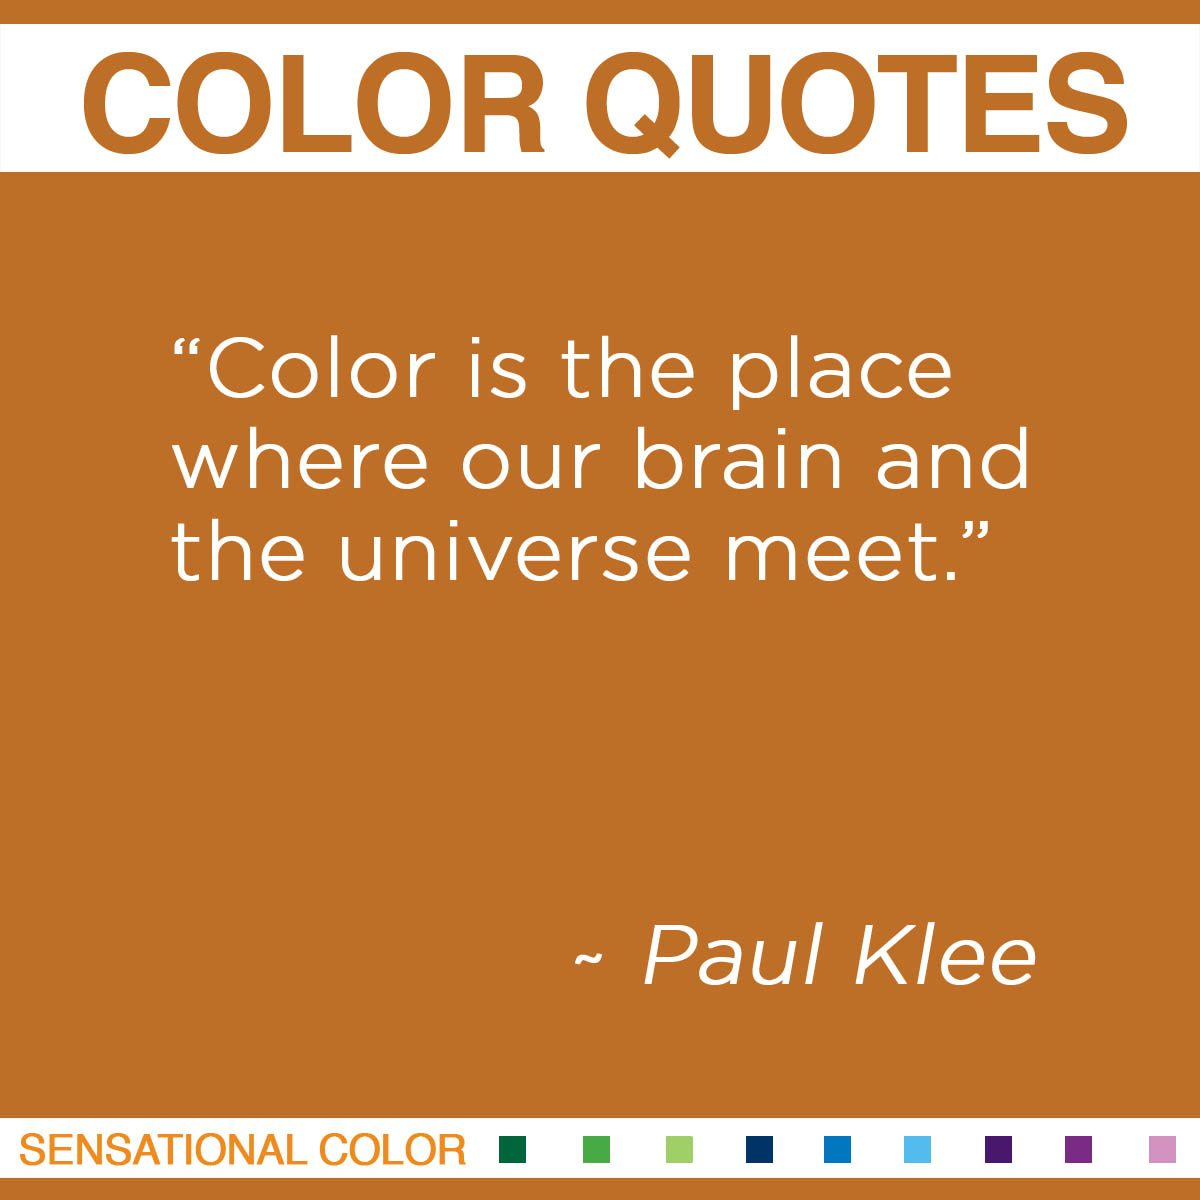 """""""Color is the place where our brain and the universe meet."""" - Paul Klee"""